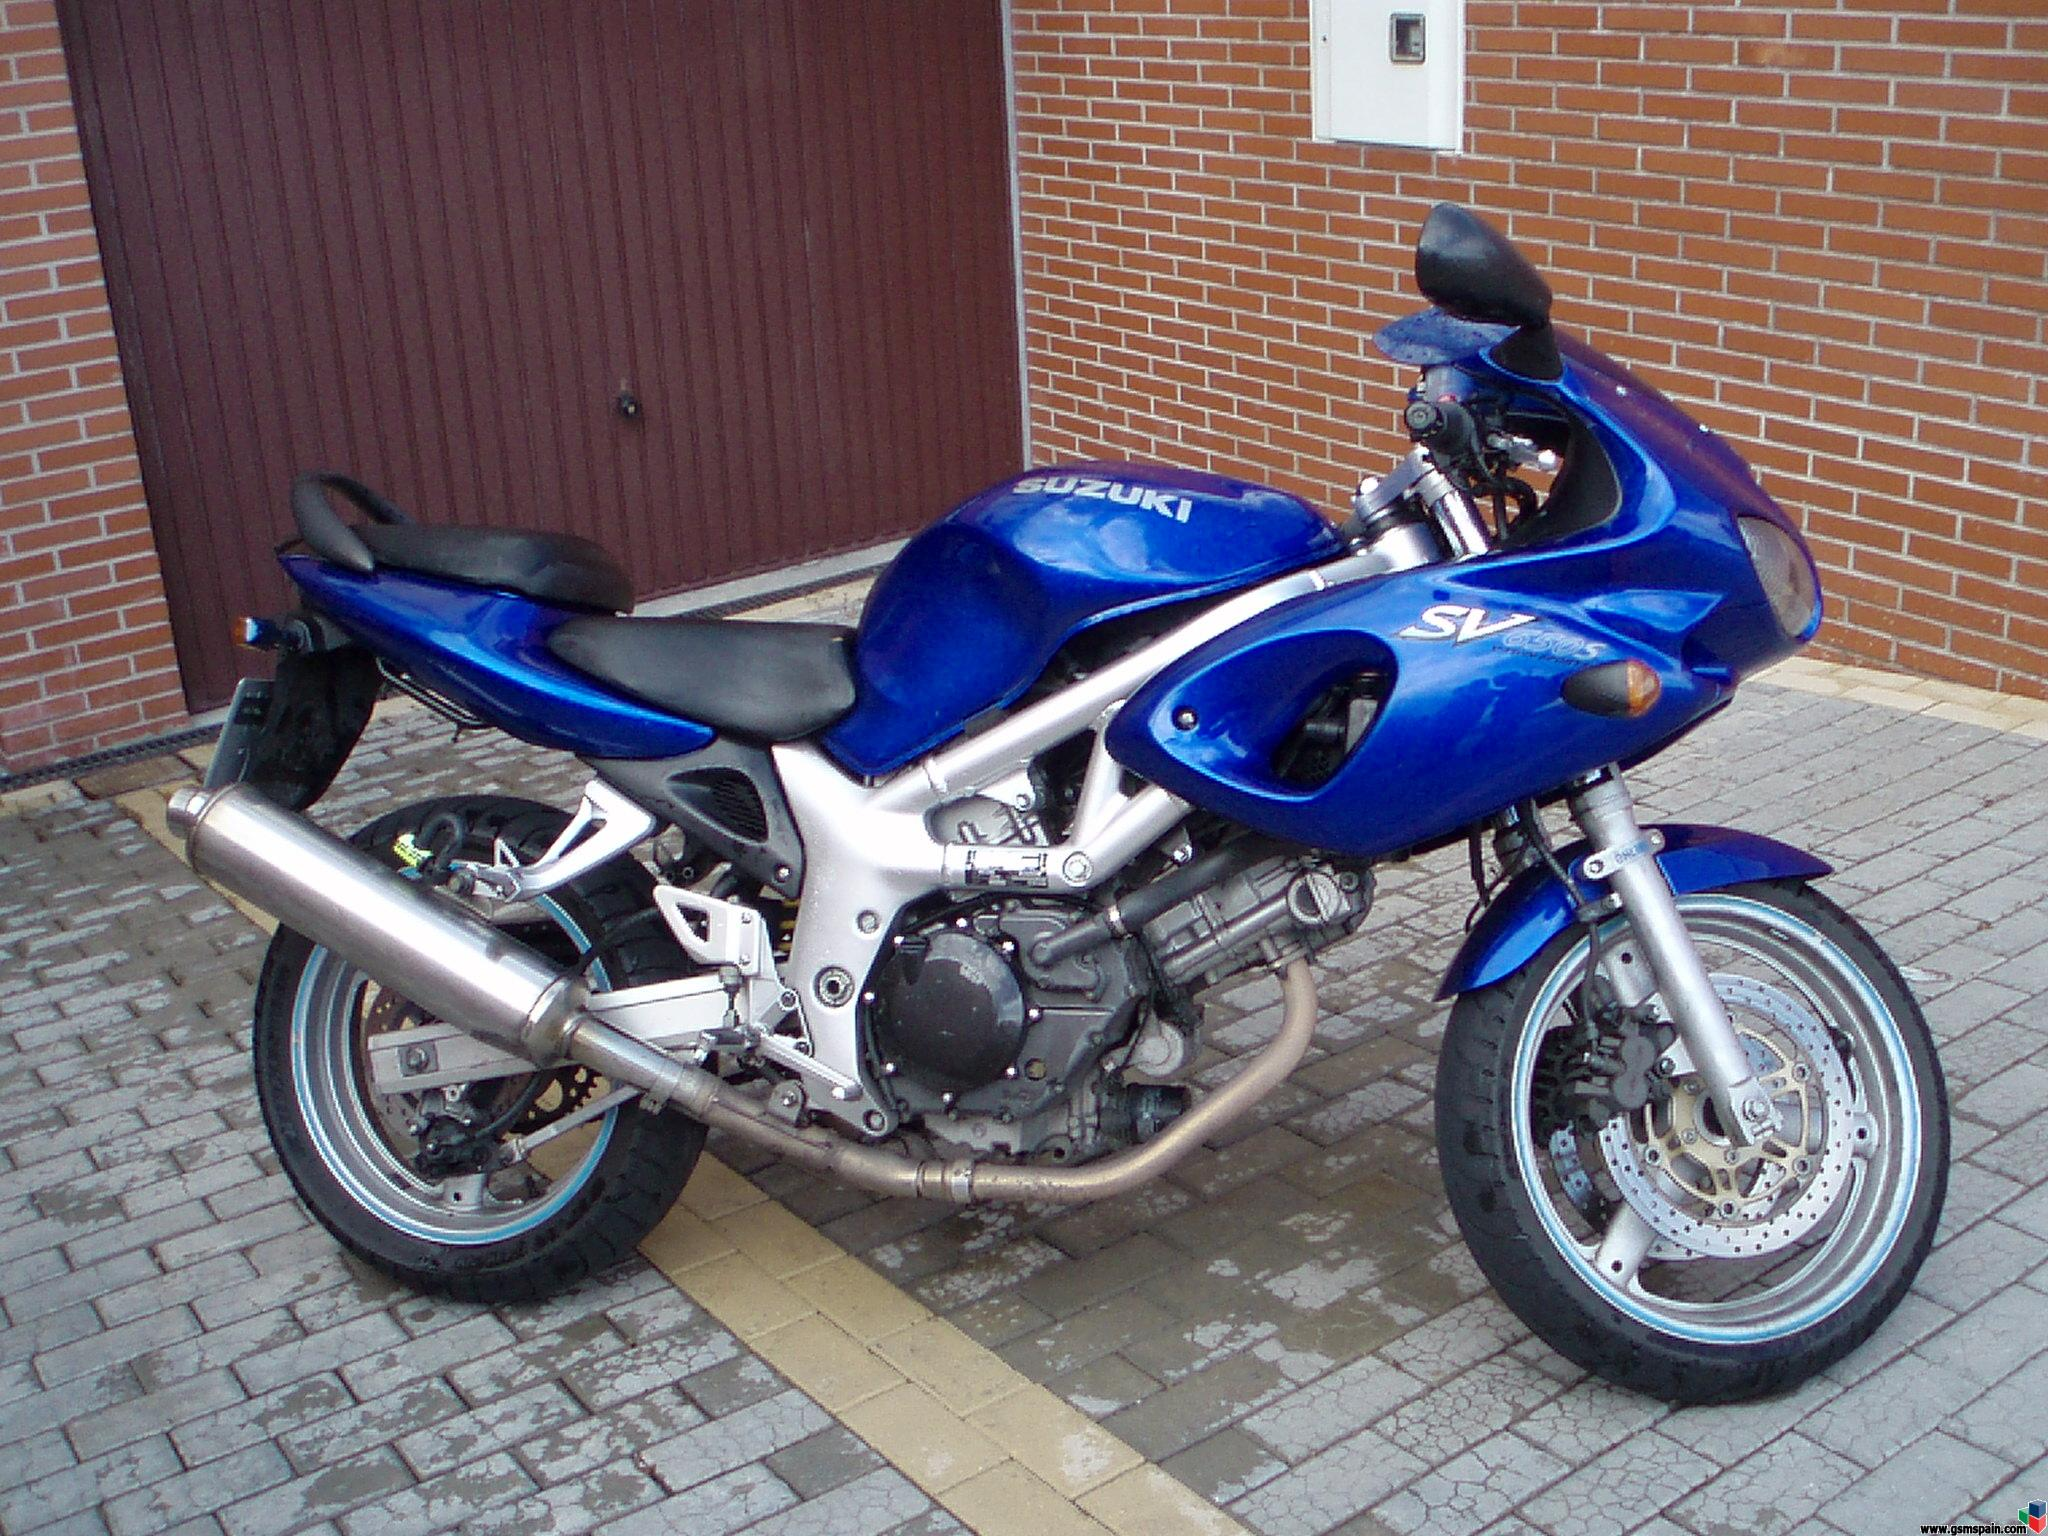 2007 suzuki sv 650 s pics specs and information. Black Bedroom Furniture Sets. Home Design Ideas